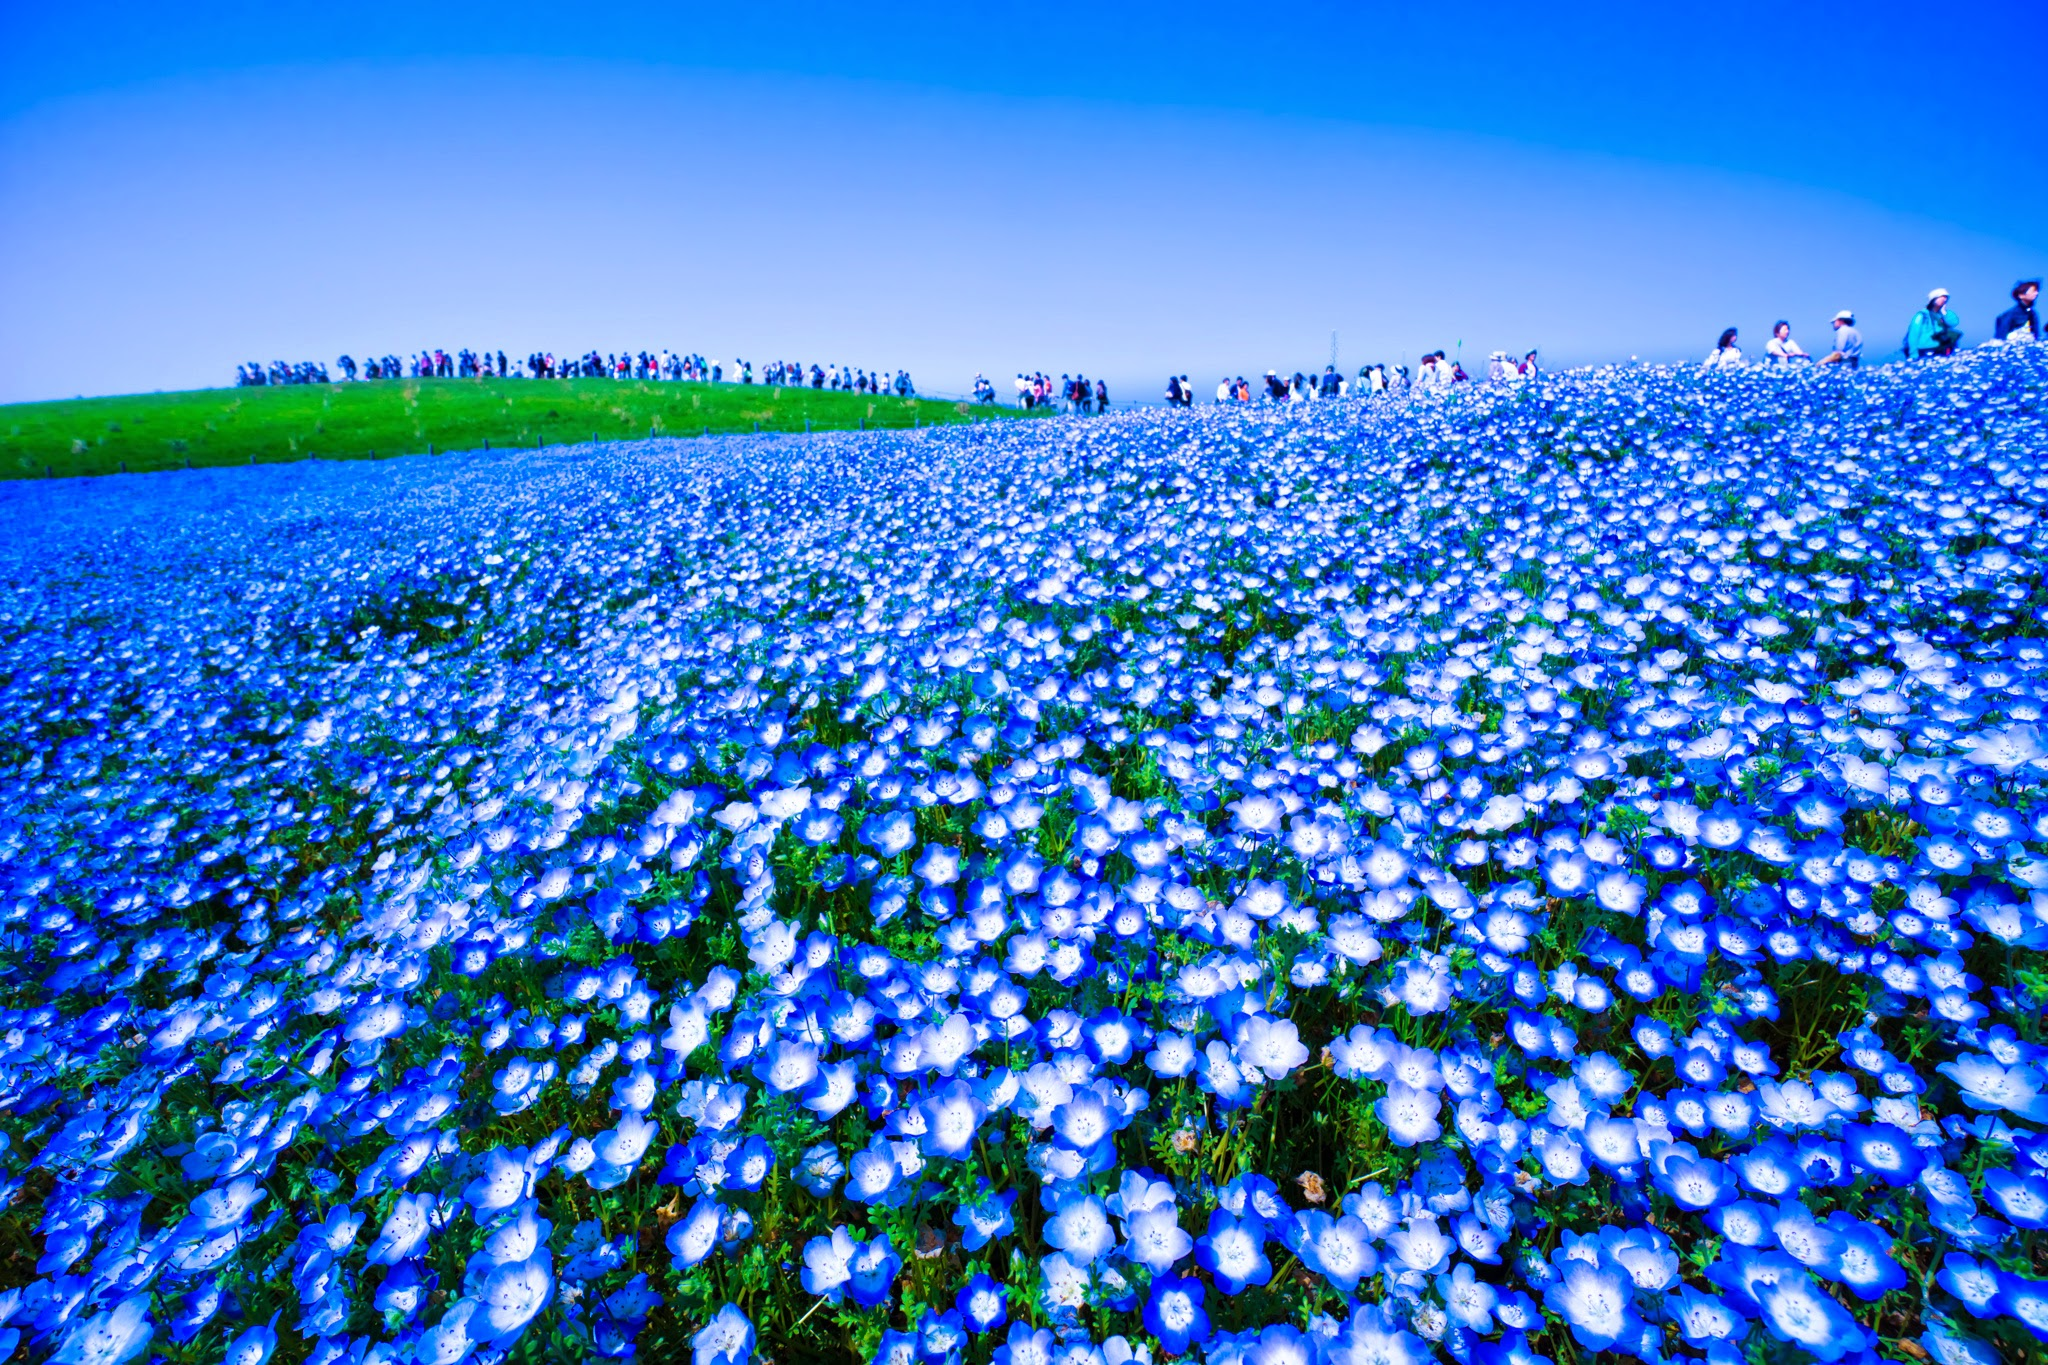 Hitachi Seaside Park Nemophila (baby blue eyes flowers) featured image